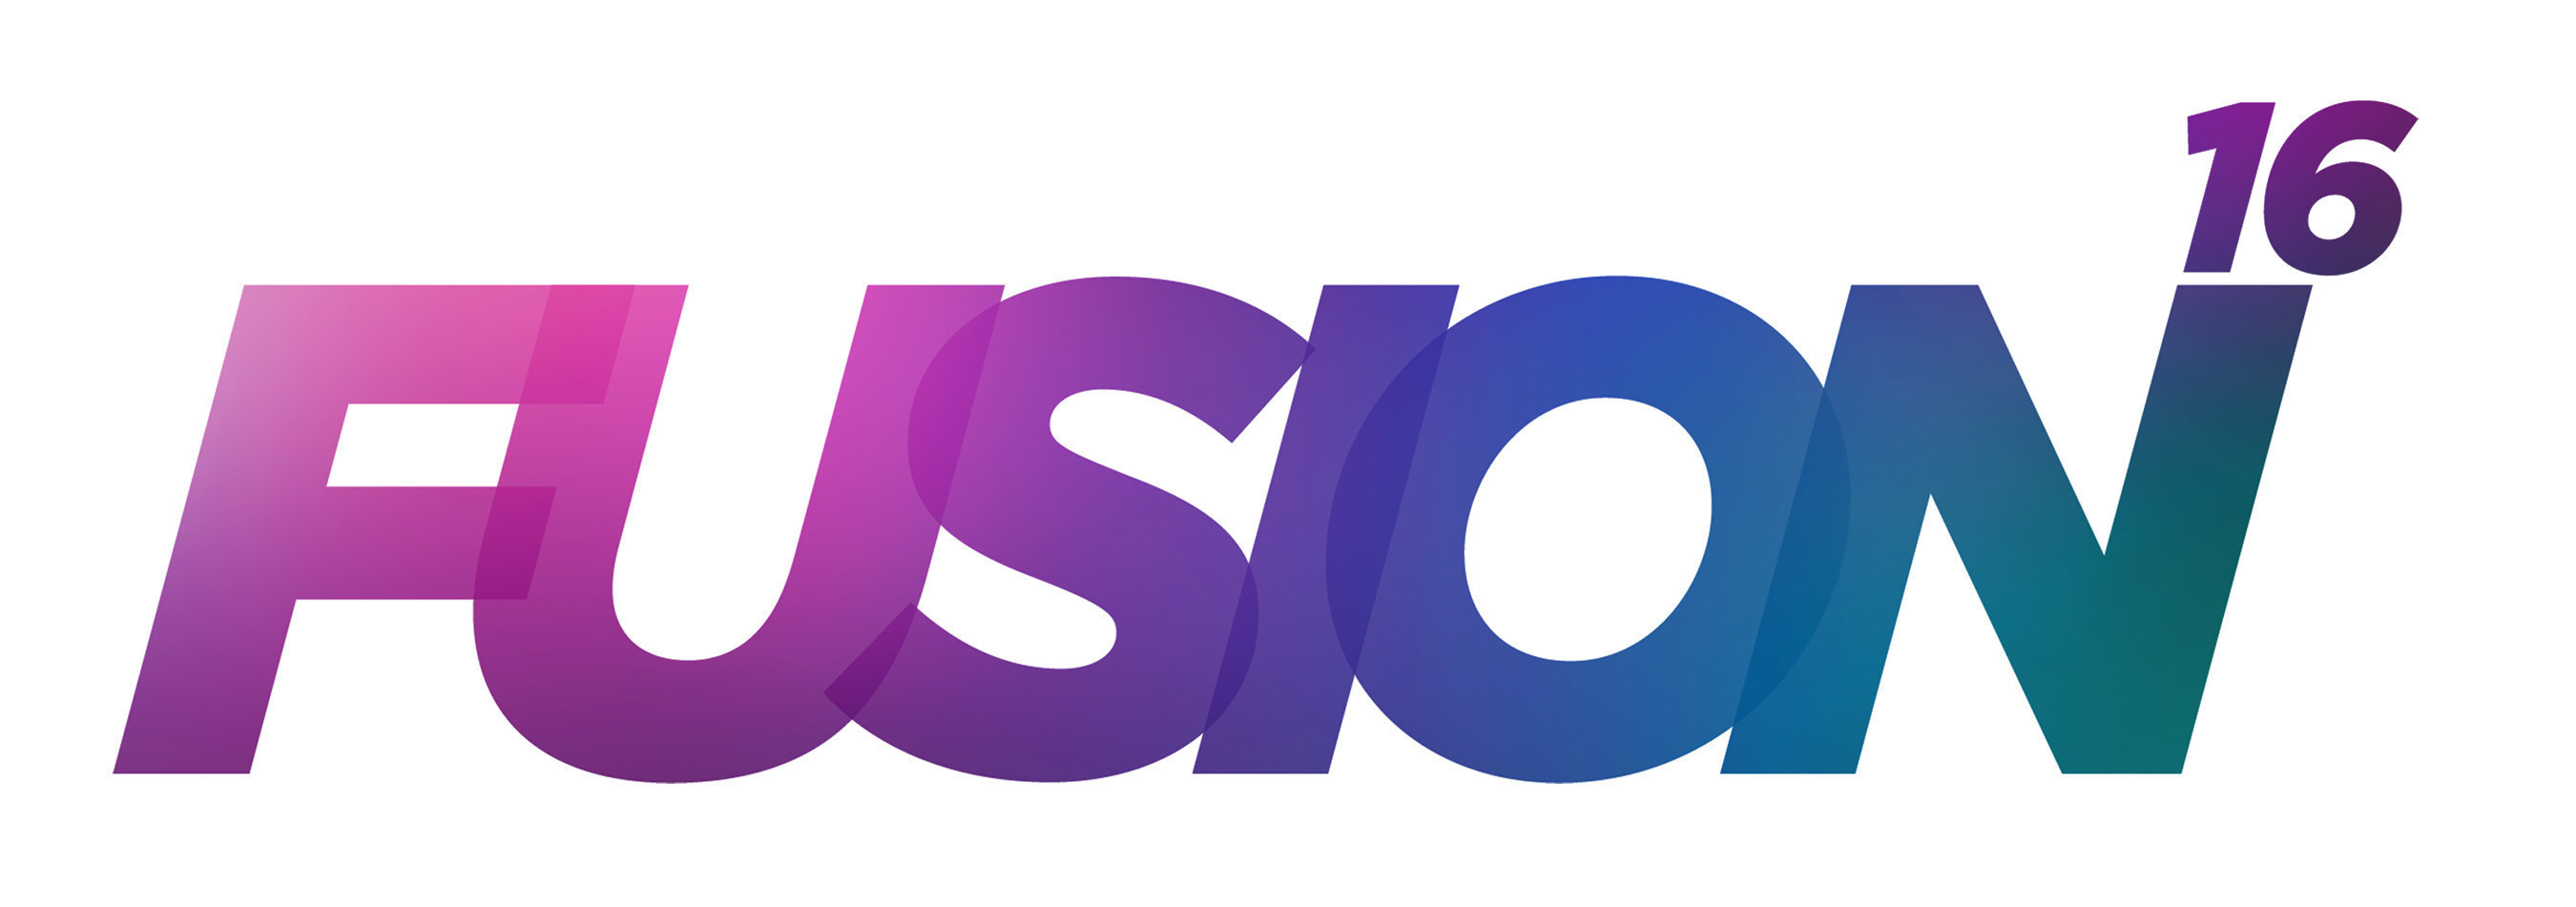 Itsmf Usa And Hdi Announce Full Schedule Of Events For Fusion 16 It